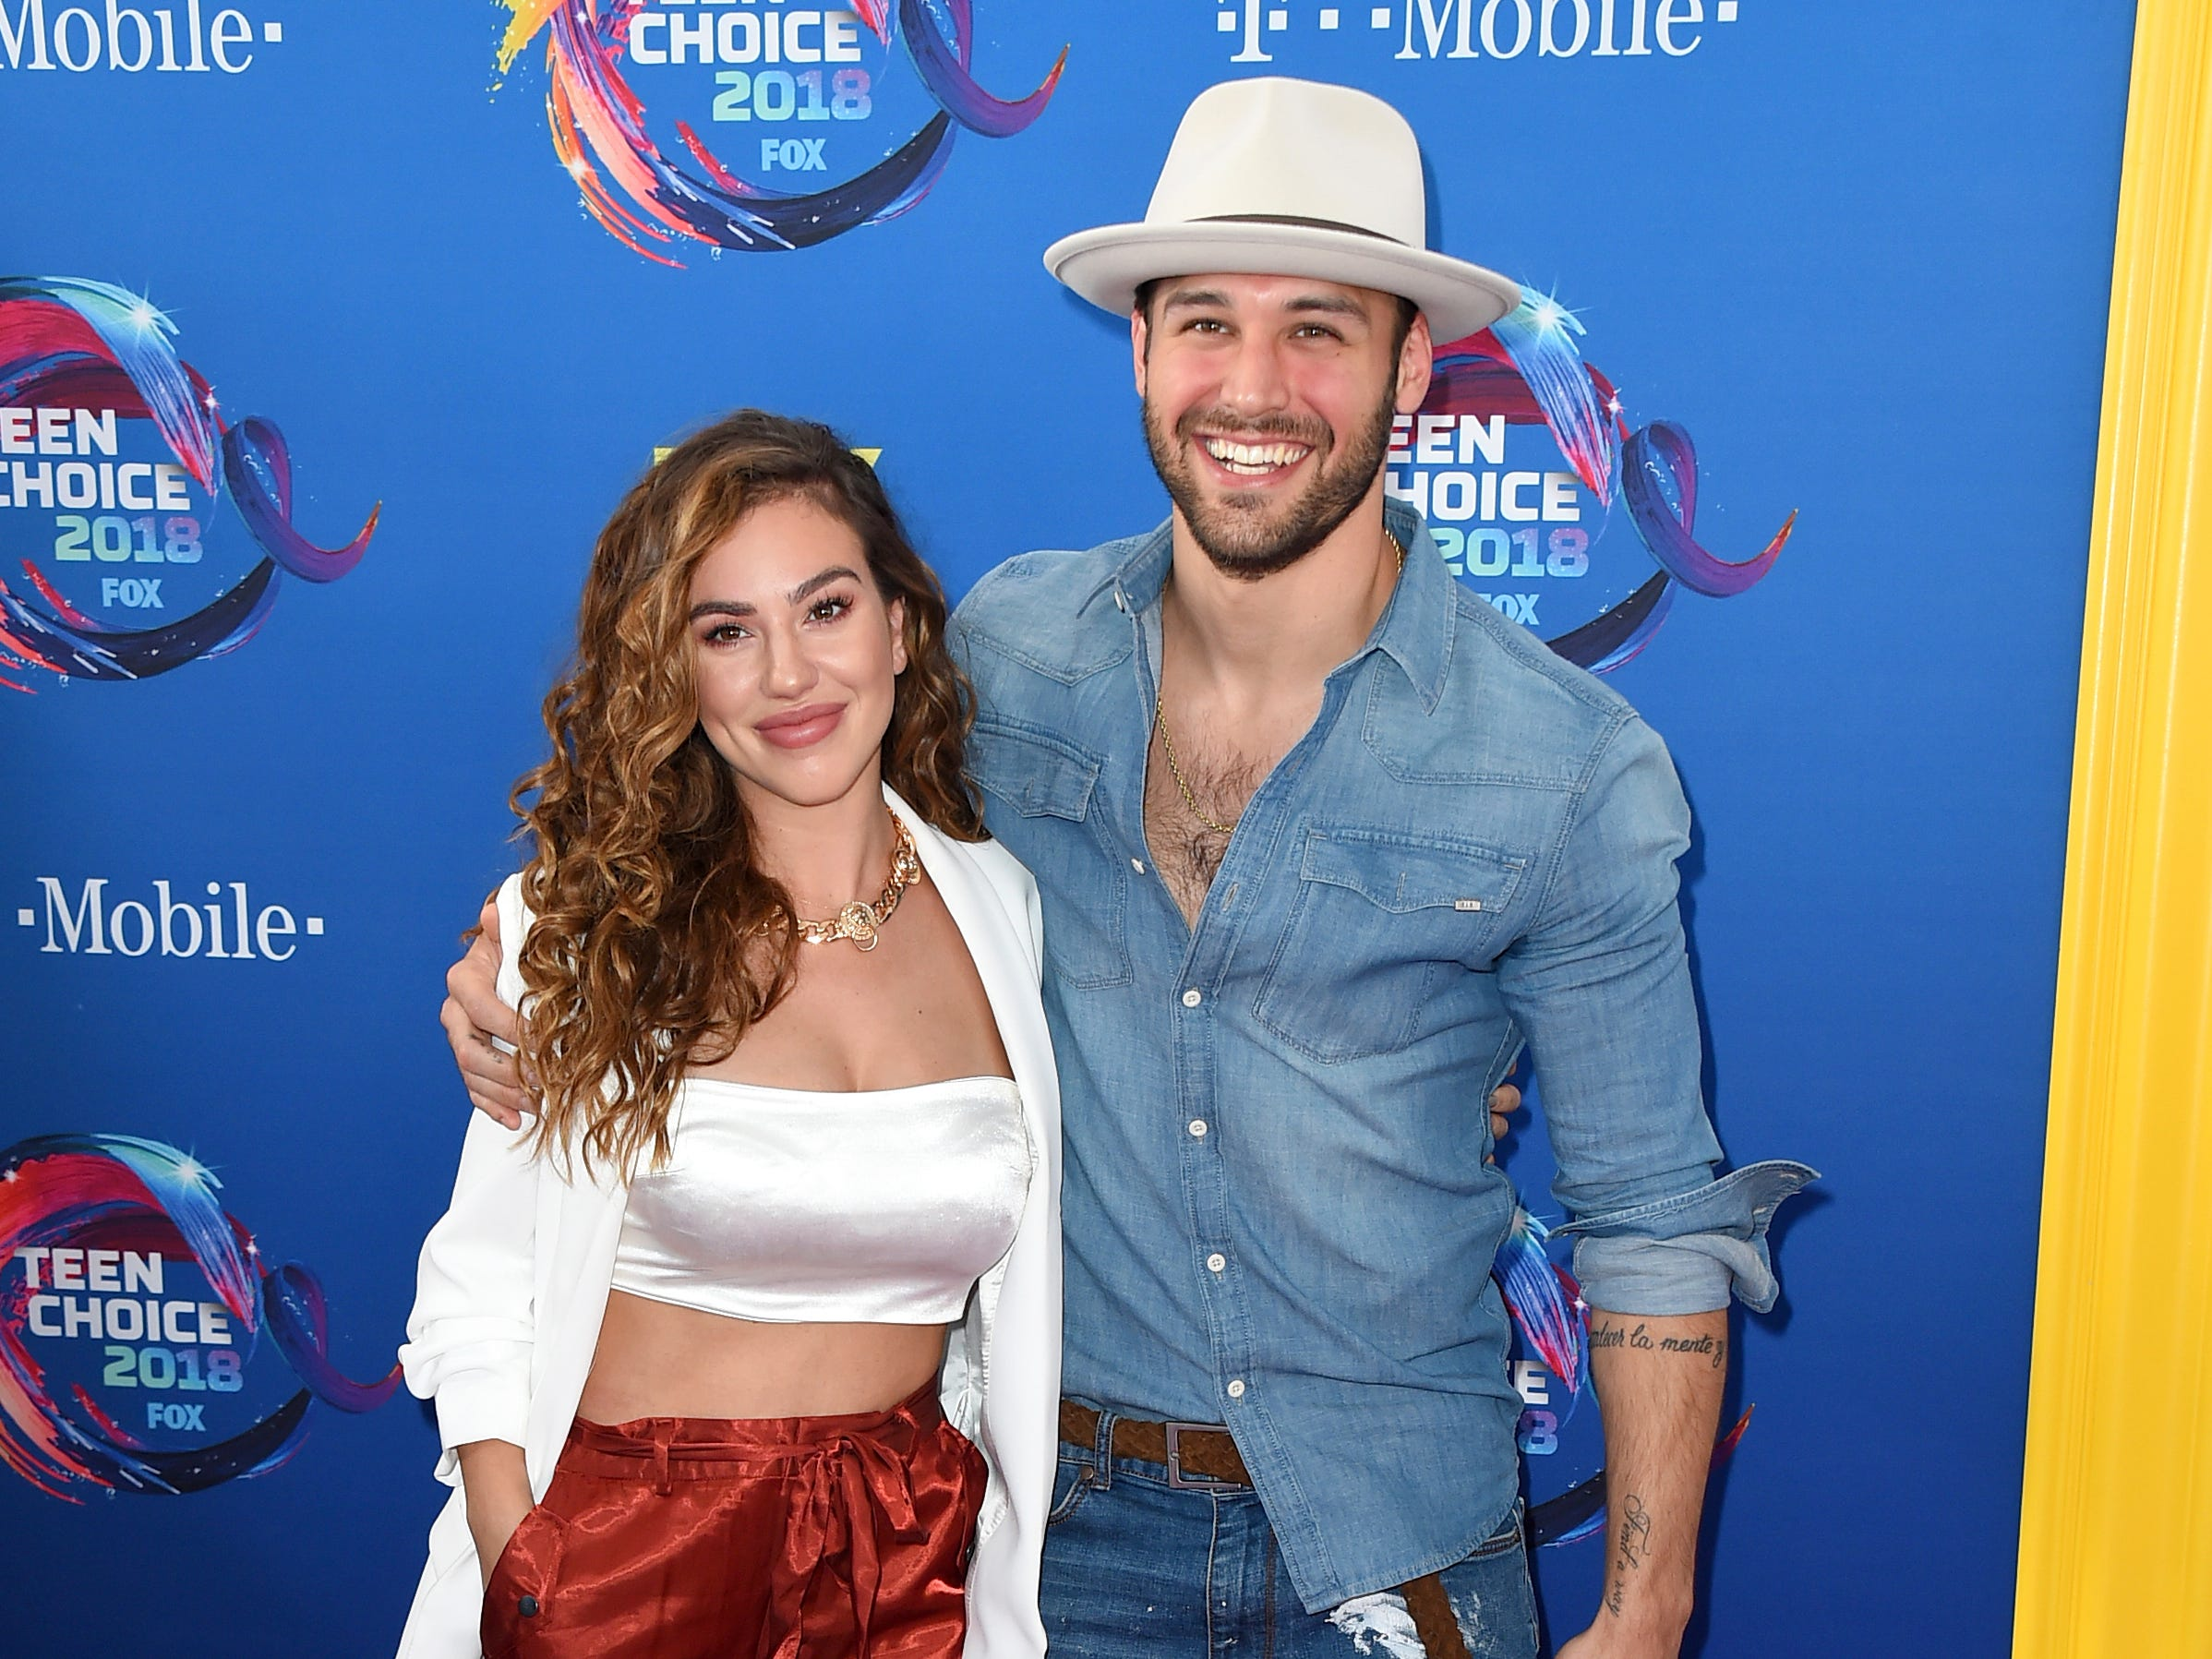 Chrysti Ane, left, and Ryan Guzman arrive at the Teen Choice Awards at The Forum on Sunday, Aug. 12, 2018, in Inglewood, Calif. (Photo by Jordan Strauss/Invision/AP) ORG XMIT: CAPM137